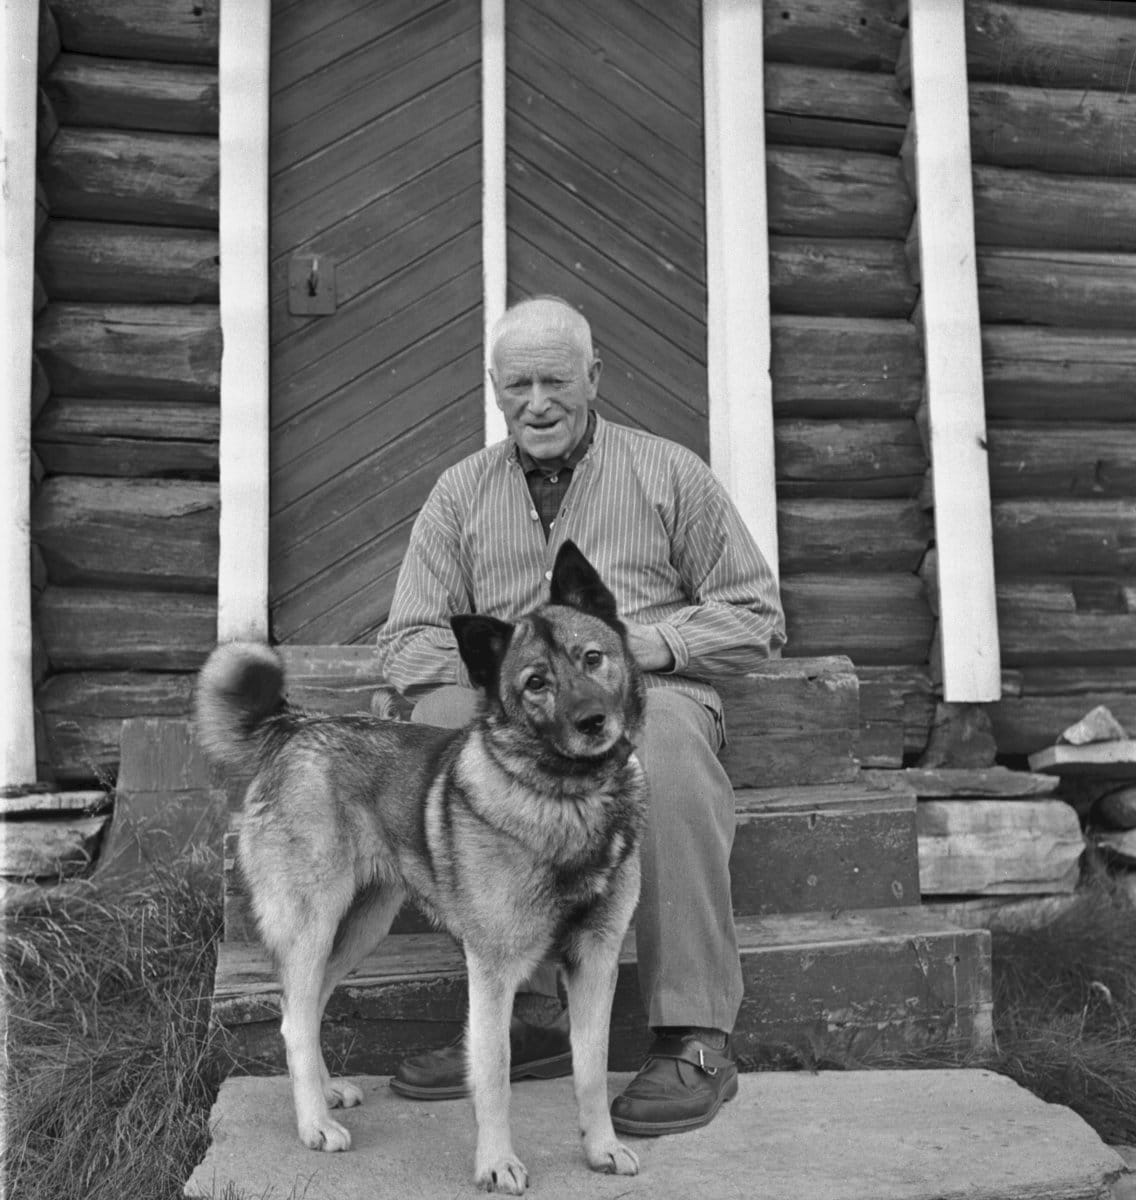 John Blæsterdalen and his Norwegian Elkhound in front of the storehouse - stabburet. The location is Folldal, Hedmark, Norge - and the year is 1968. | Photo: Per Magne Grue - digitaltmuseum MINØ.100835 - cc by.